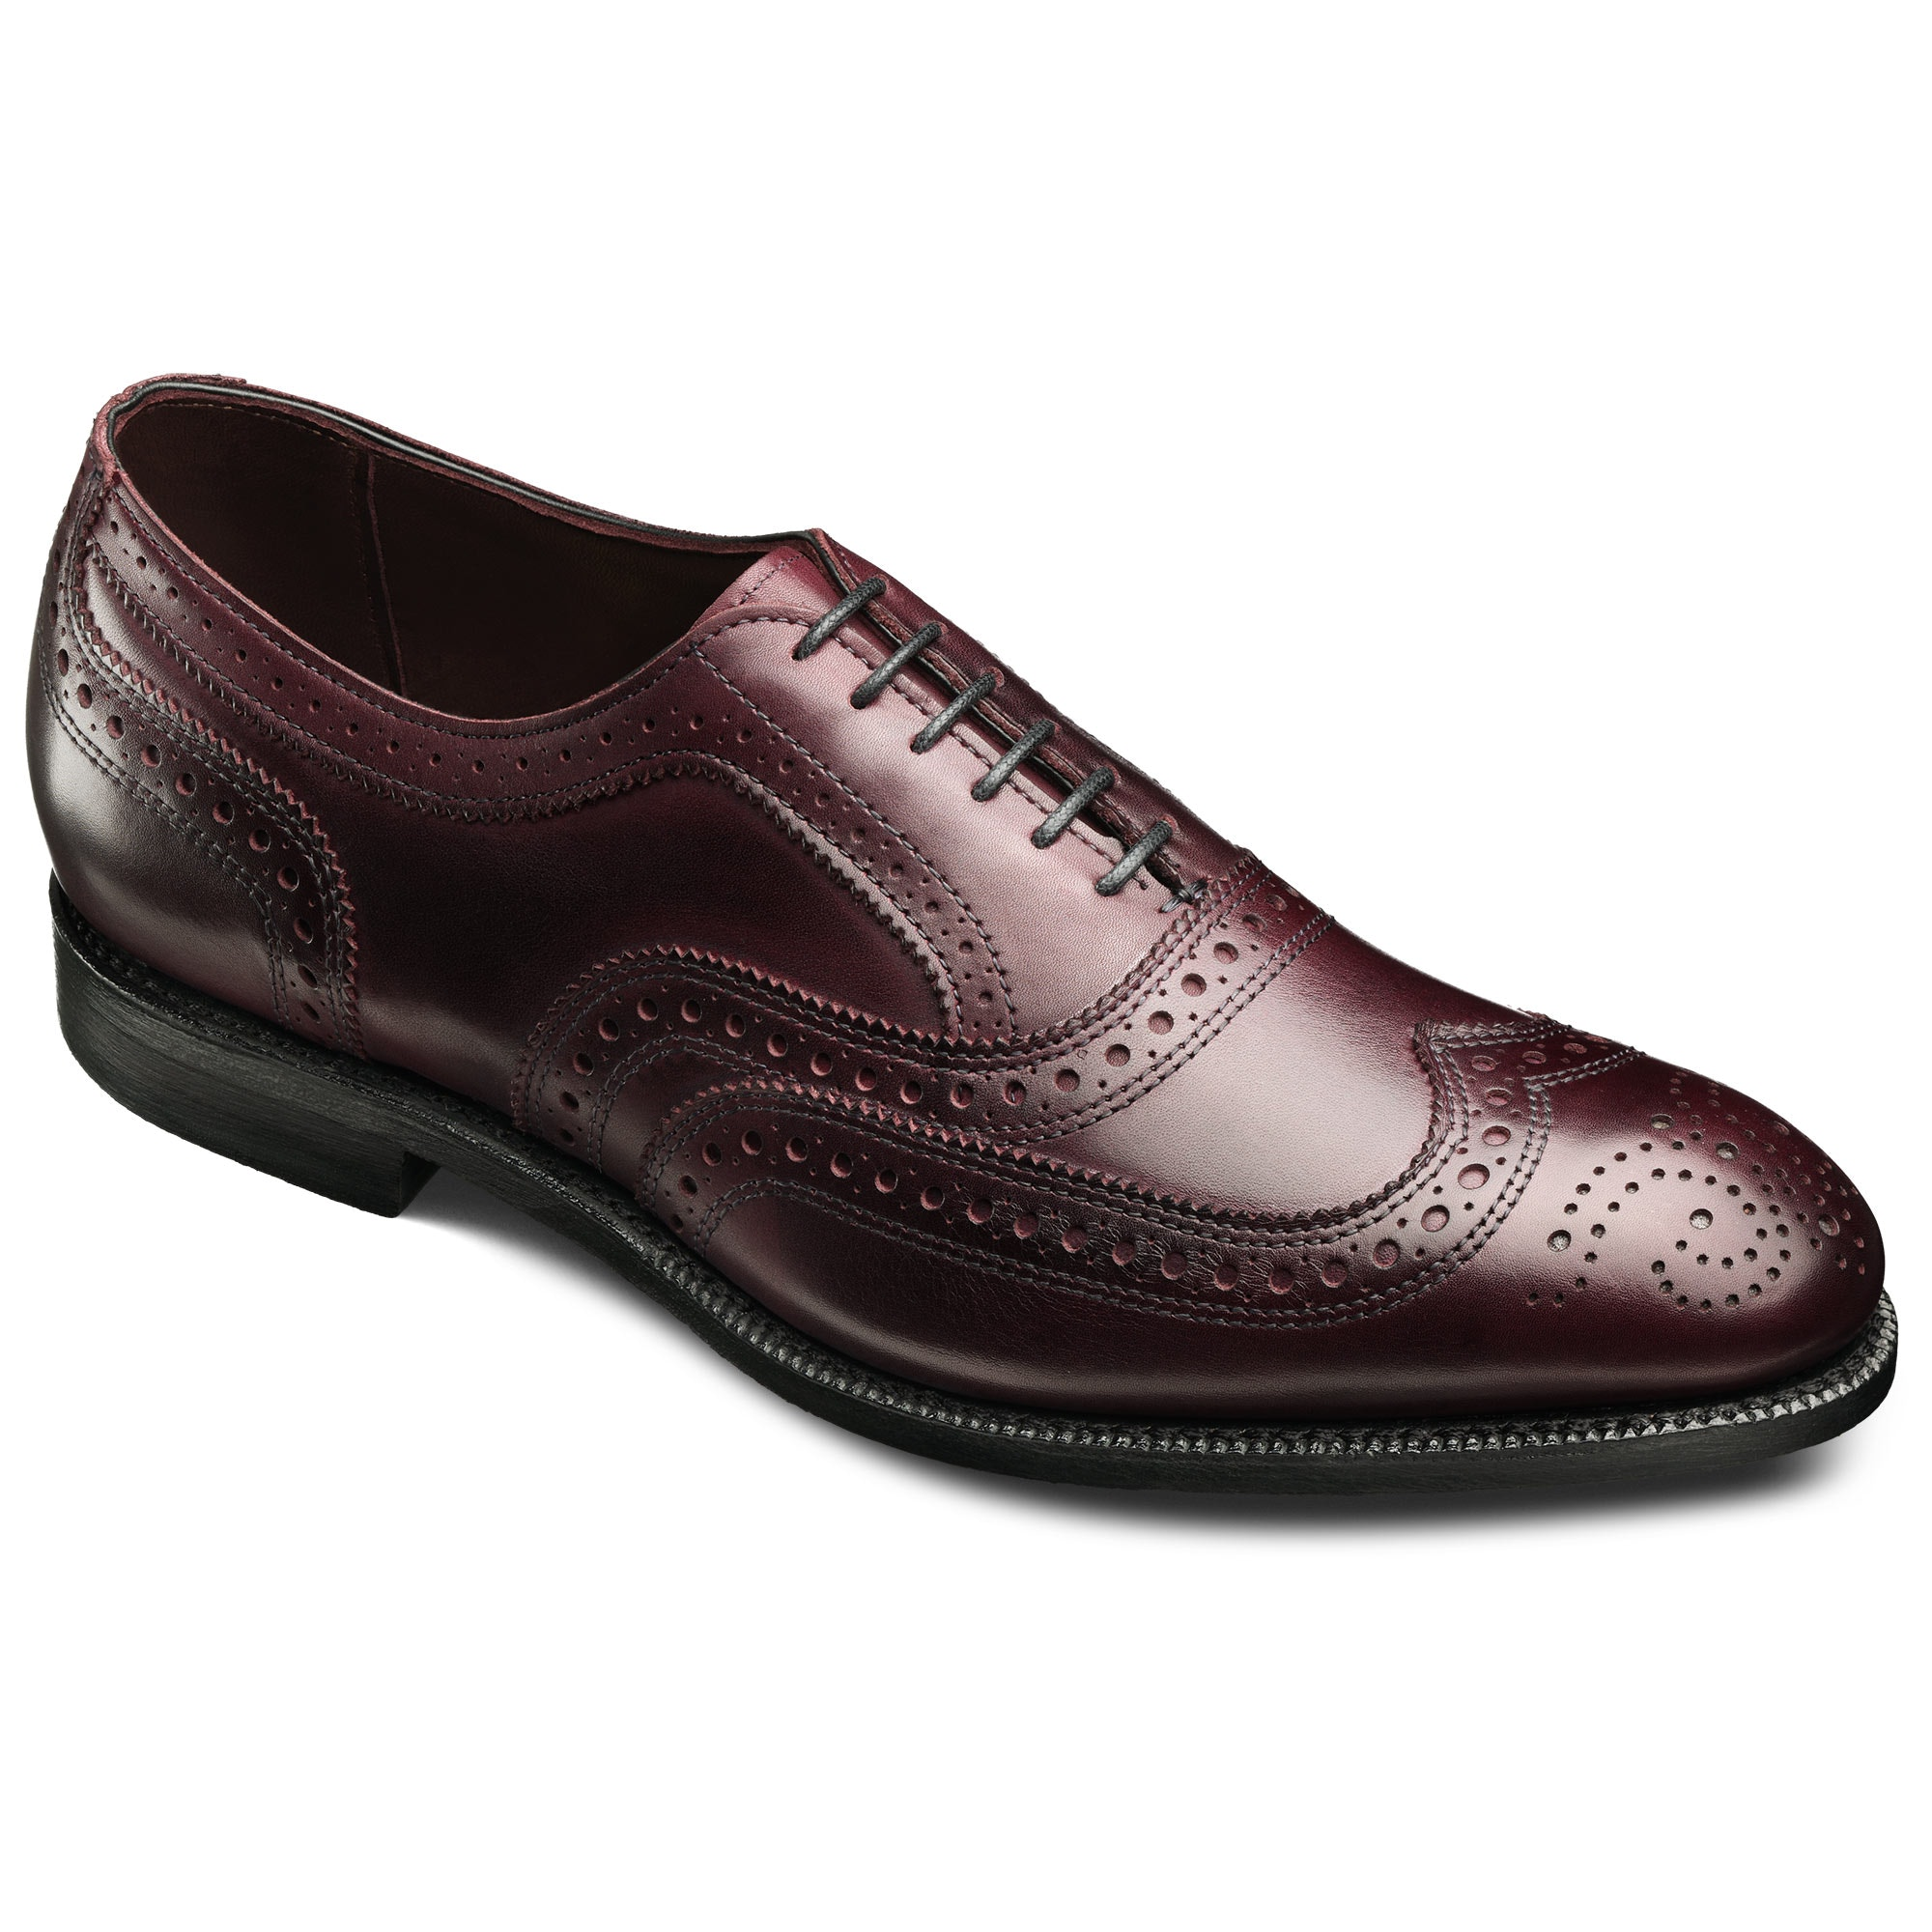 Jefferson 2.0 - Wingtip Lace-up Oxford Men's Dress Shoes by Allen Edmonds